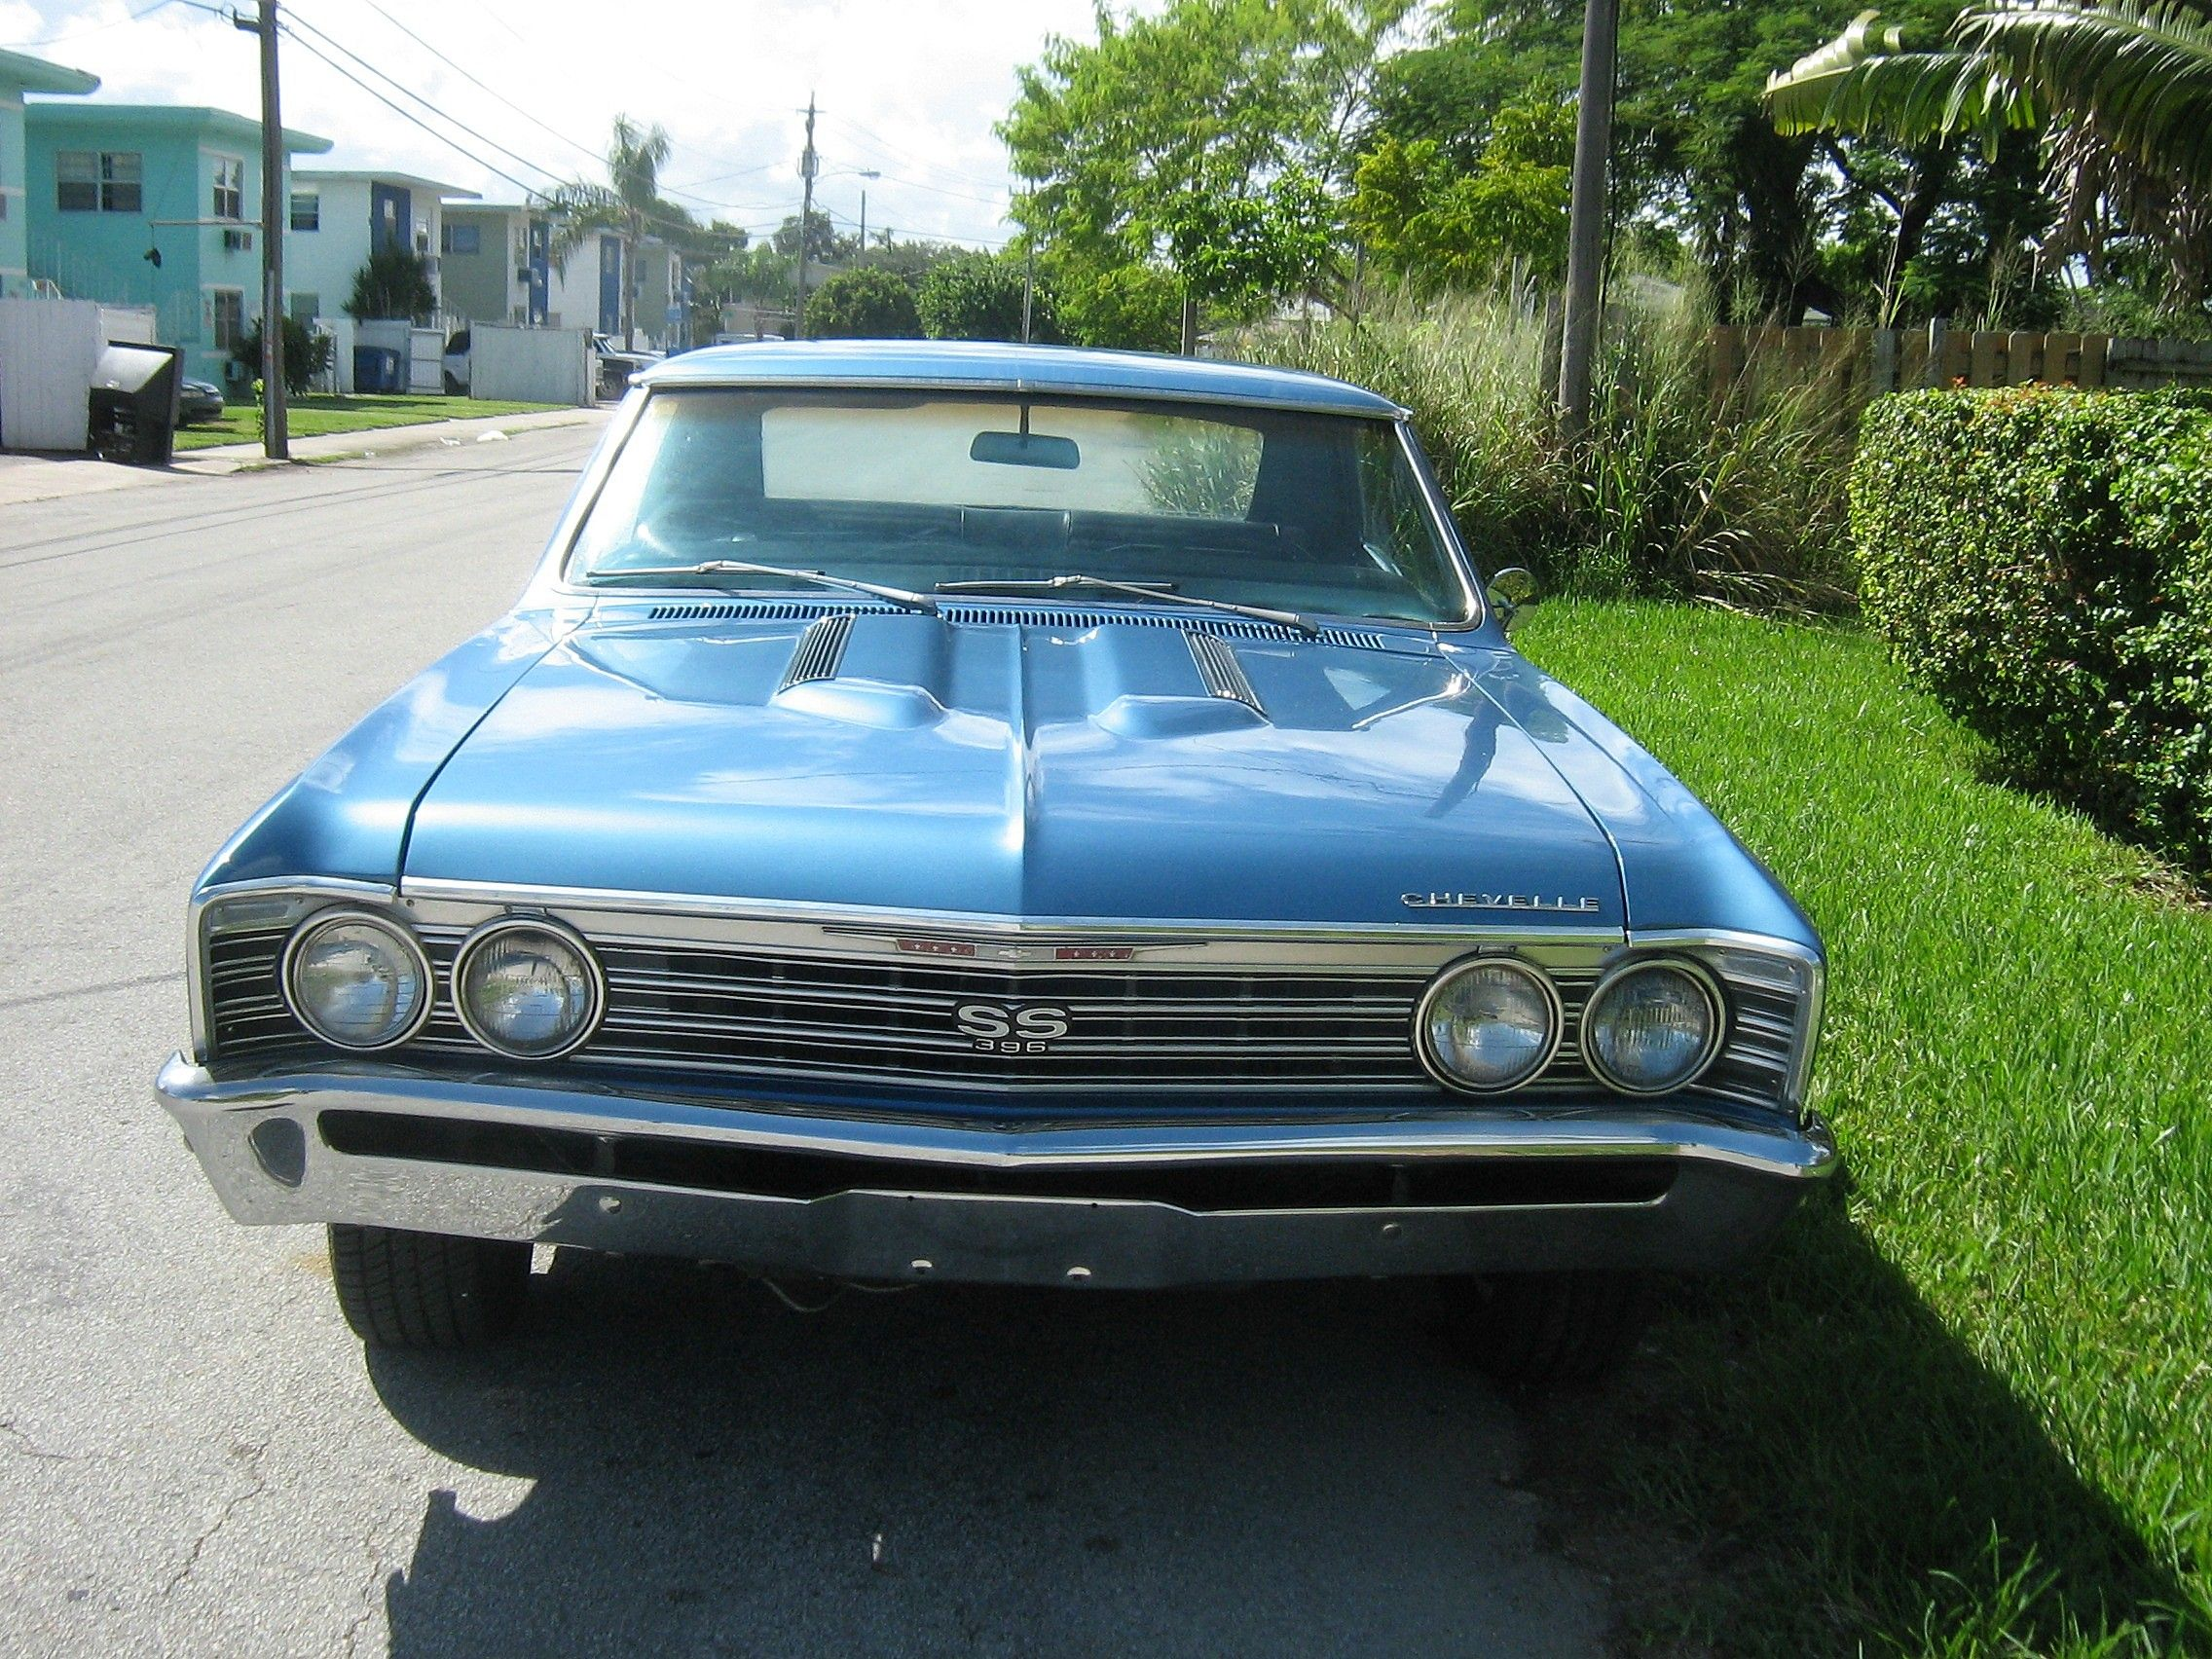 1967 Chevelle for Sale Cheap | 1967 Chevrolet Chevelle Ss Clone for ...